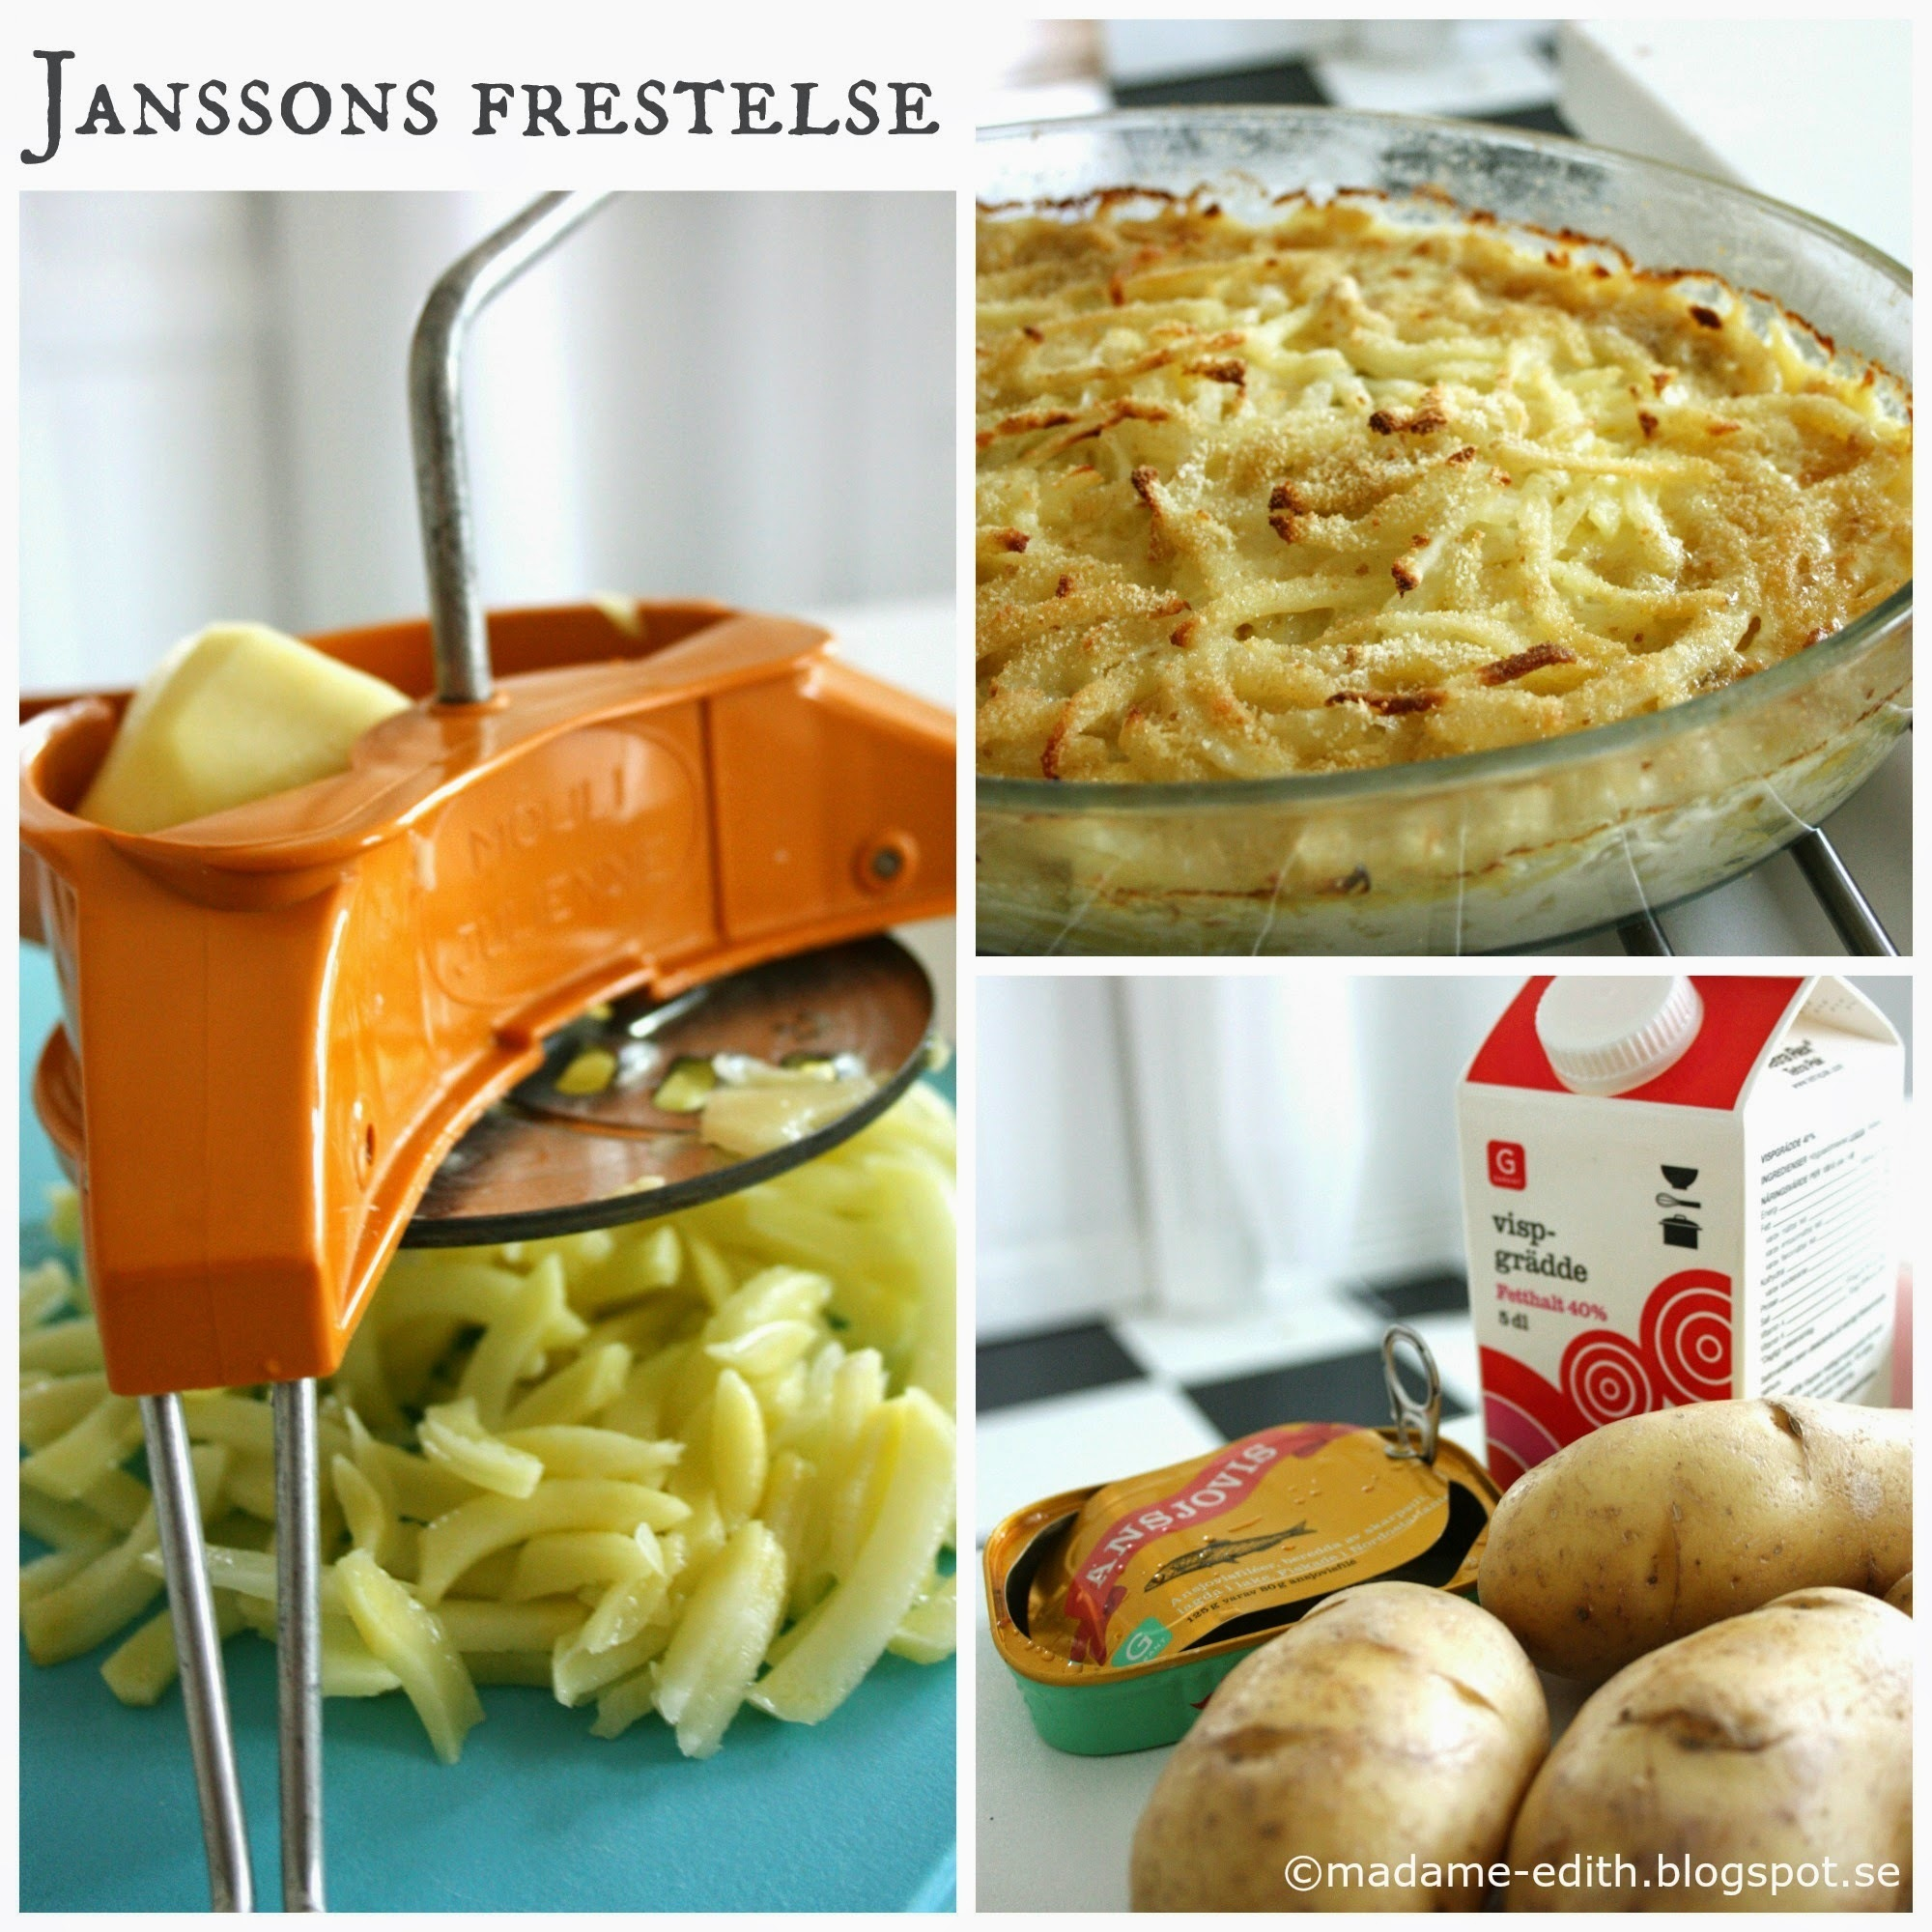 Janssons frestelse